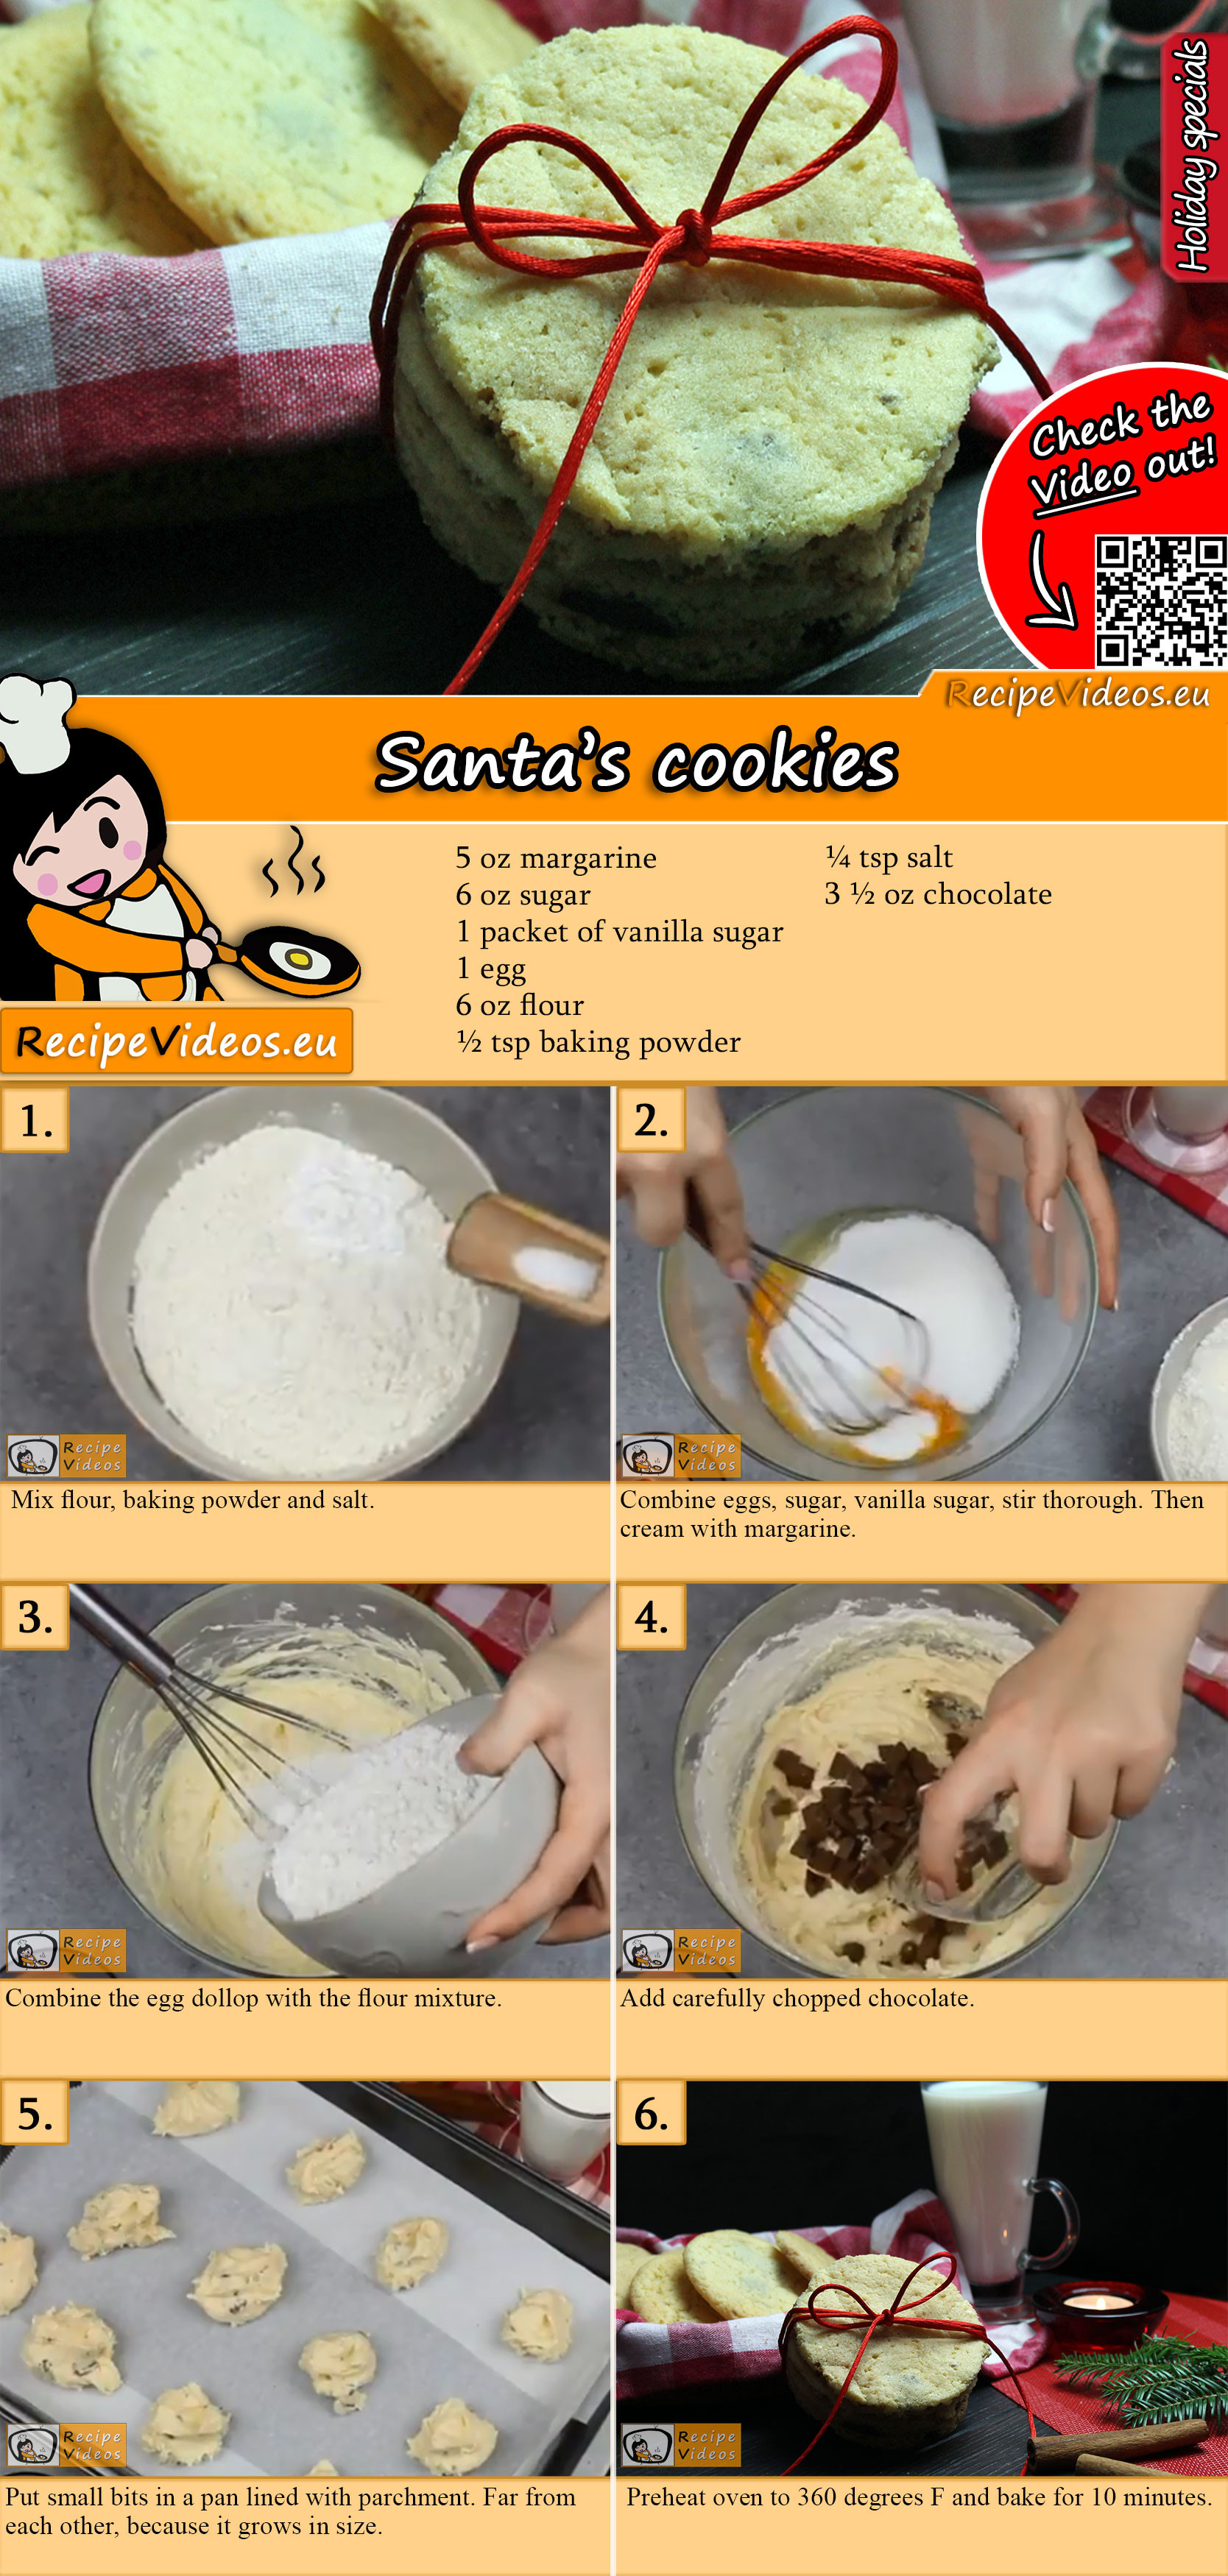 Santa's cookies recipe with video